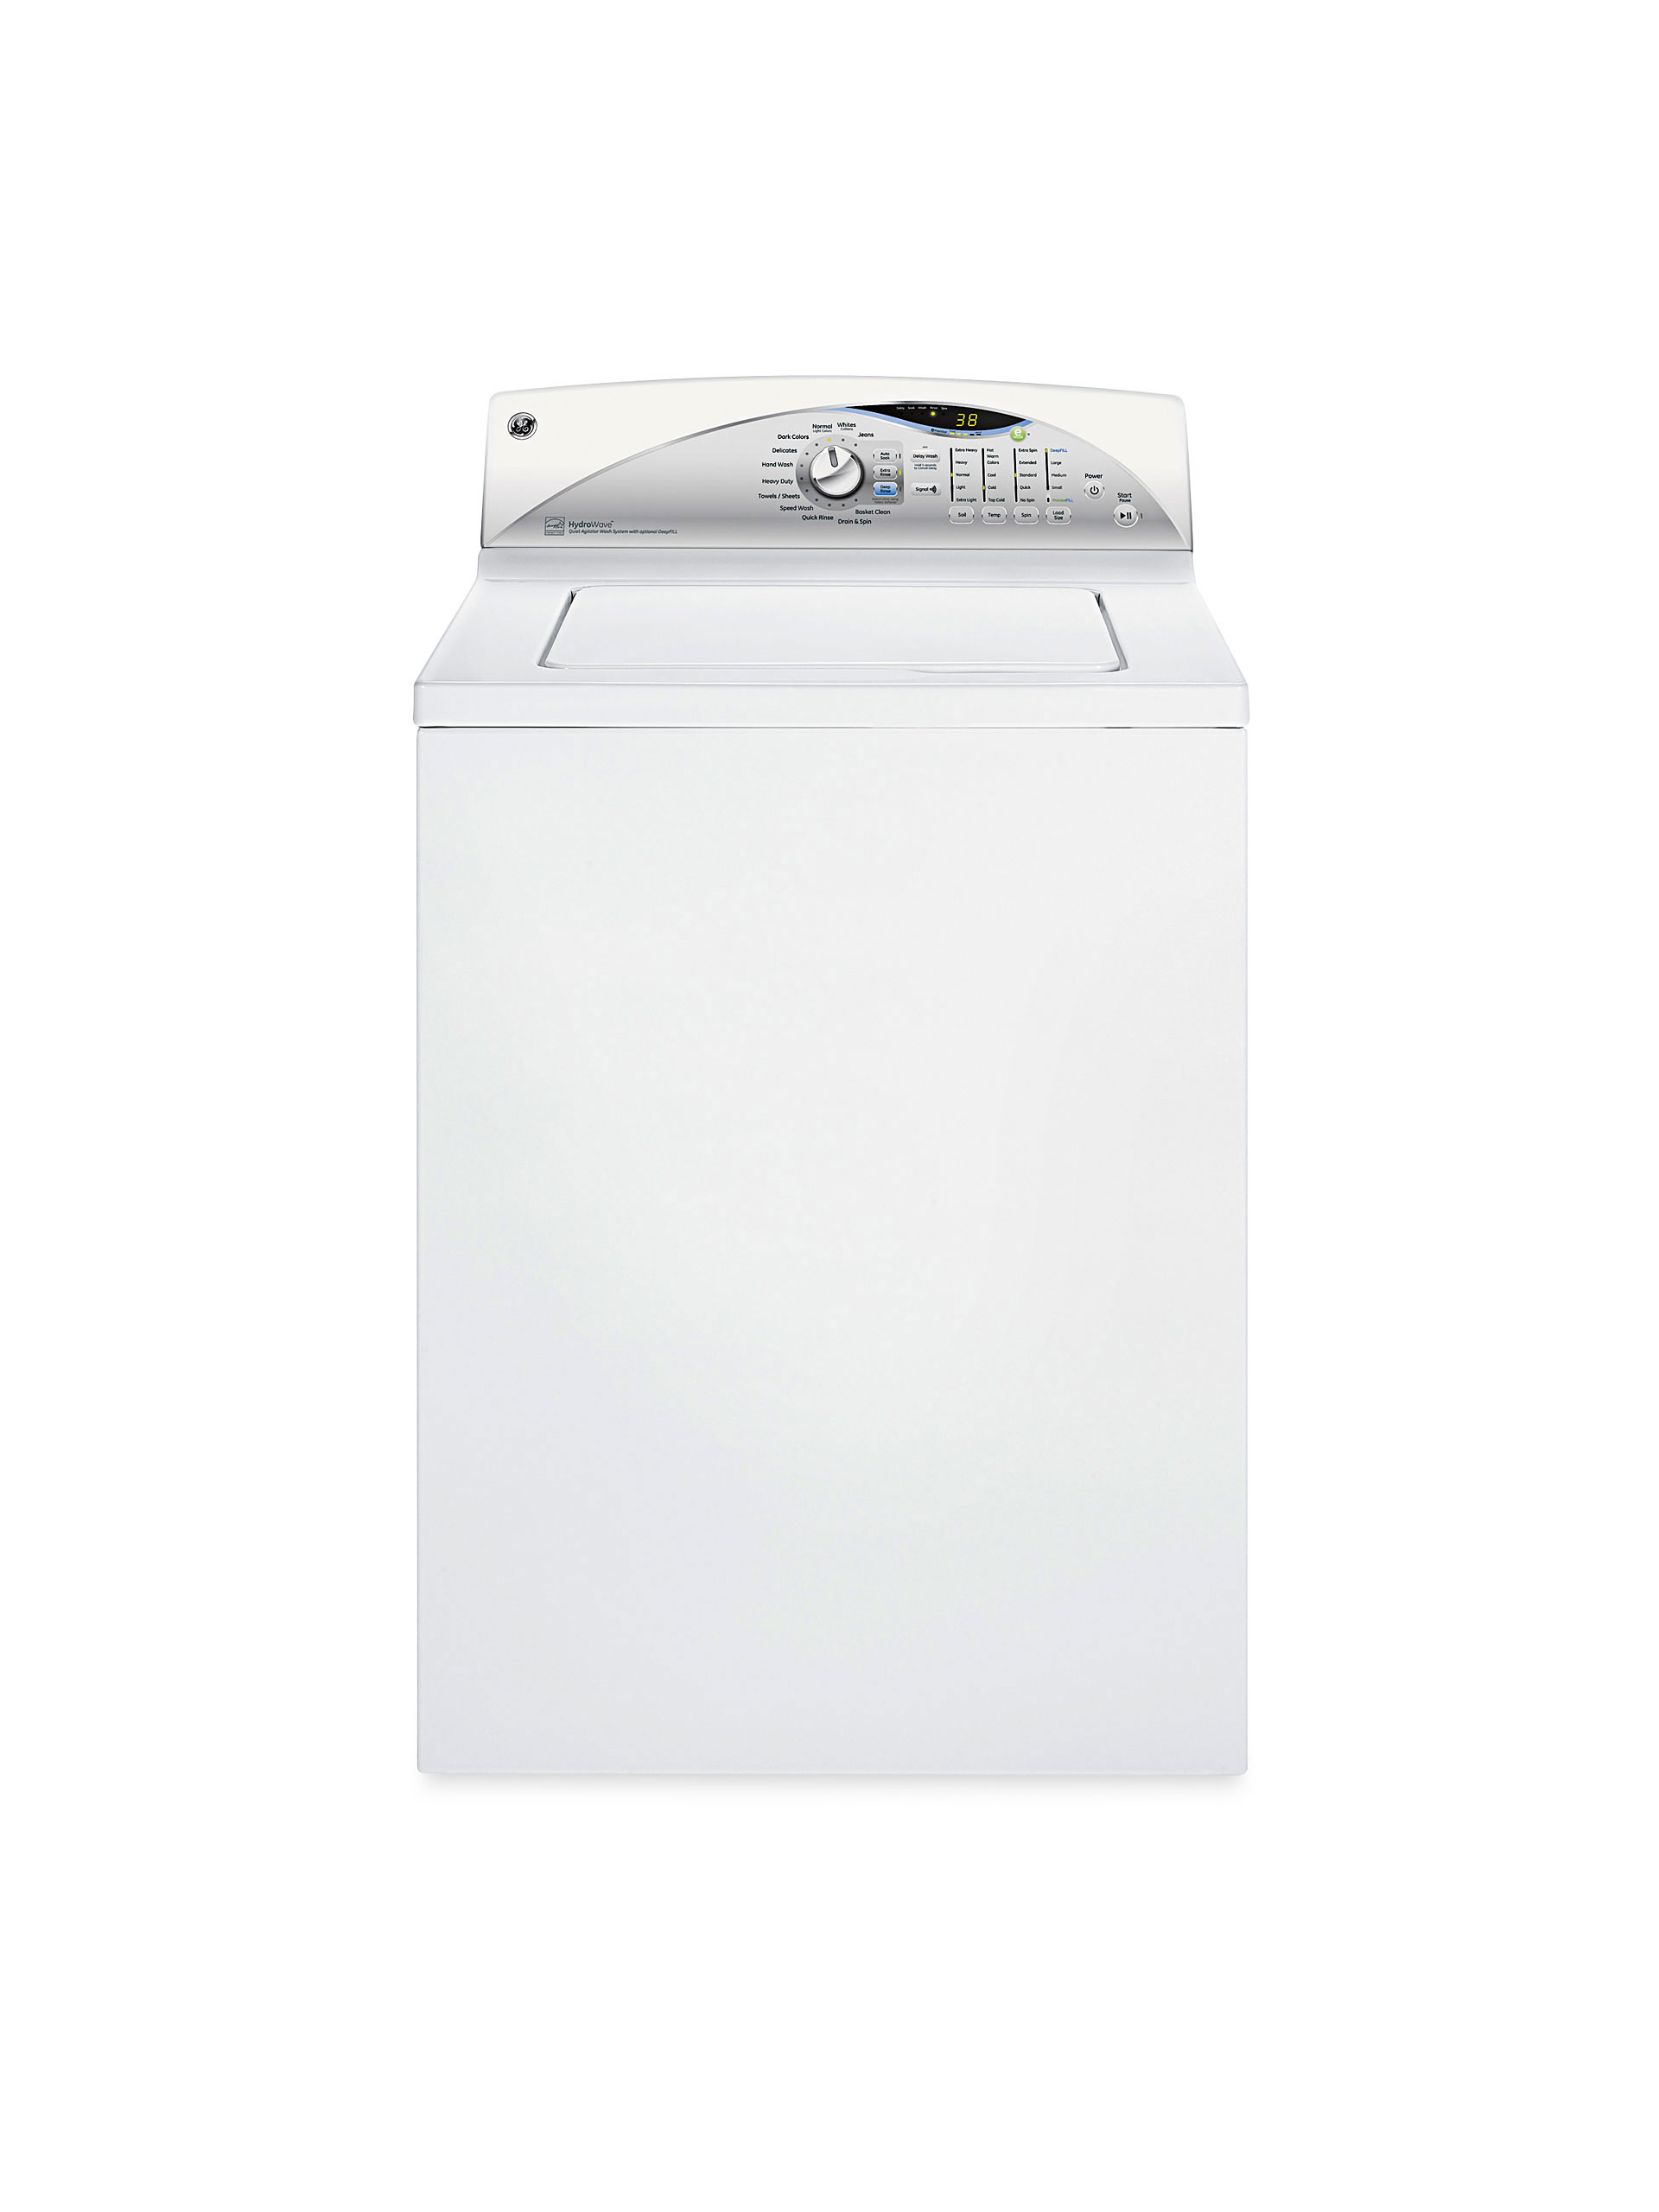 Largest Top Loading Washing Machine 4 Best Washing Machines 2016 Reviews Of Top Washers